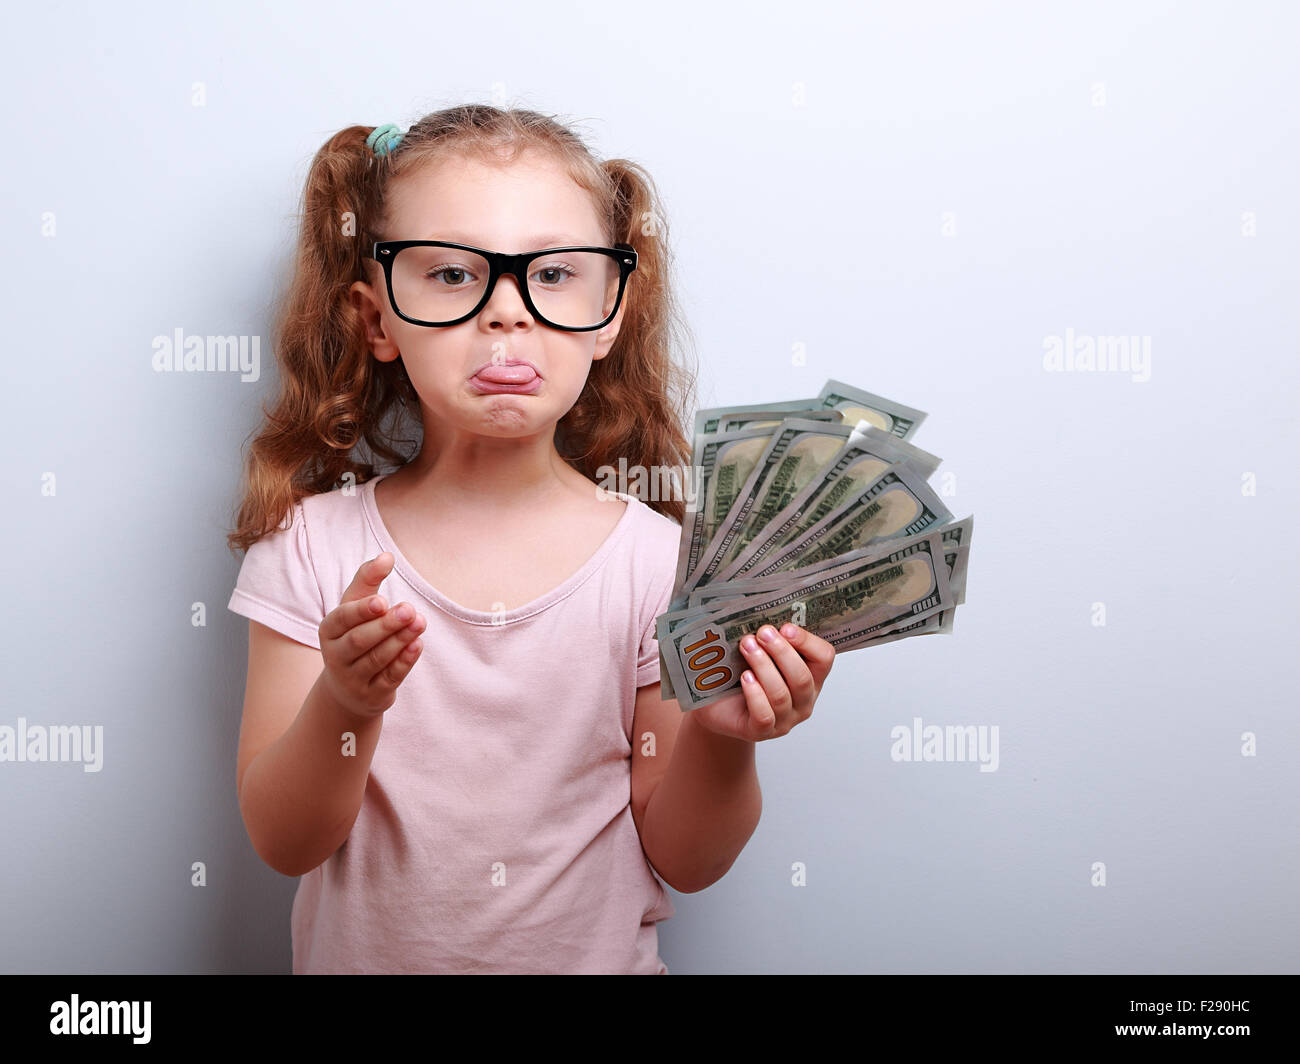 Fun grimacing kid girl explaining and showing tongue holding money in hand on blue background - Stock Image